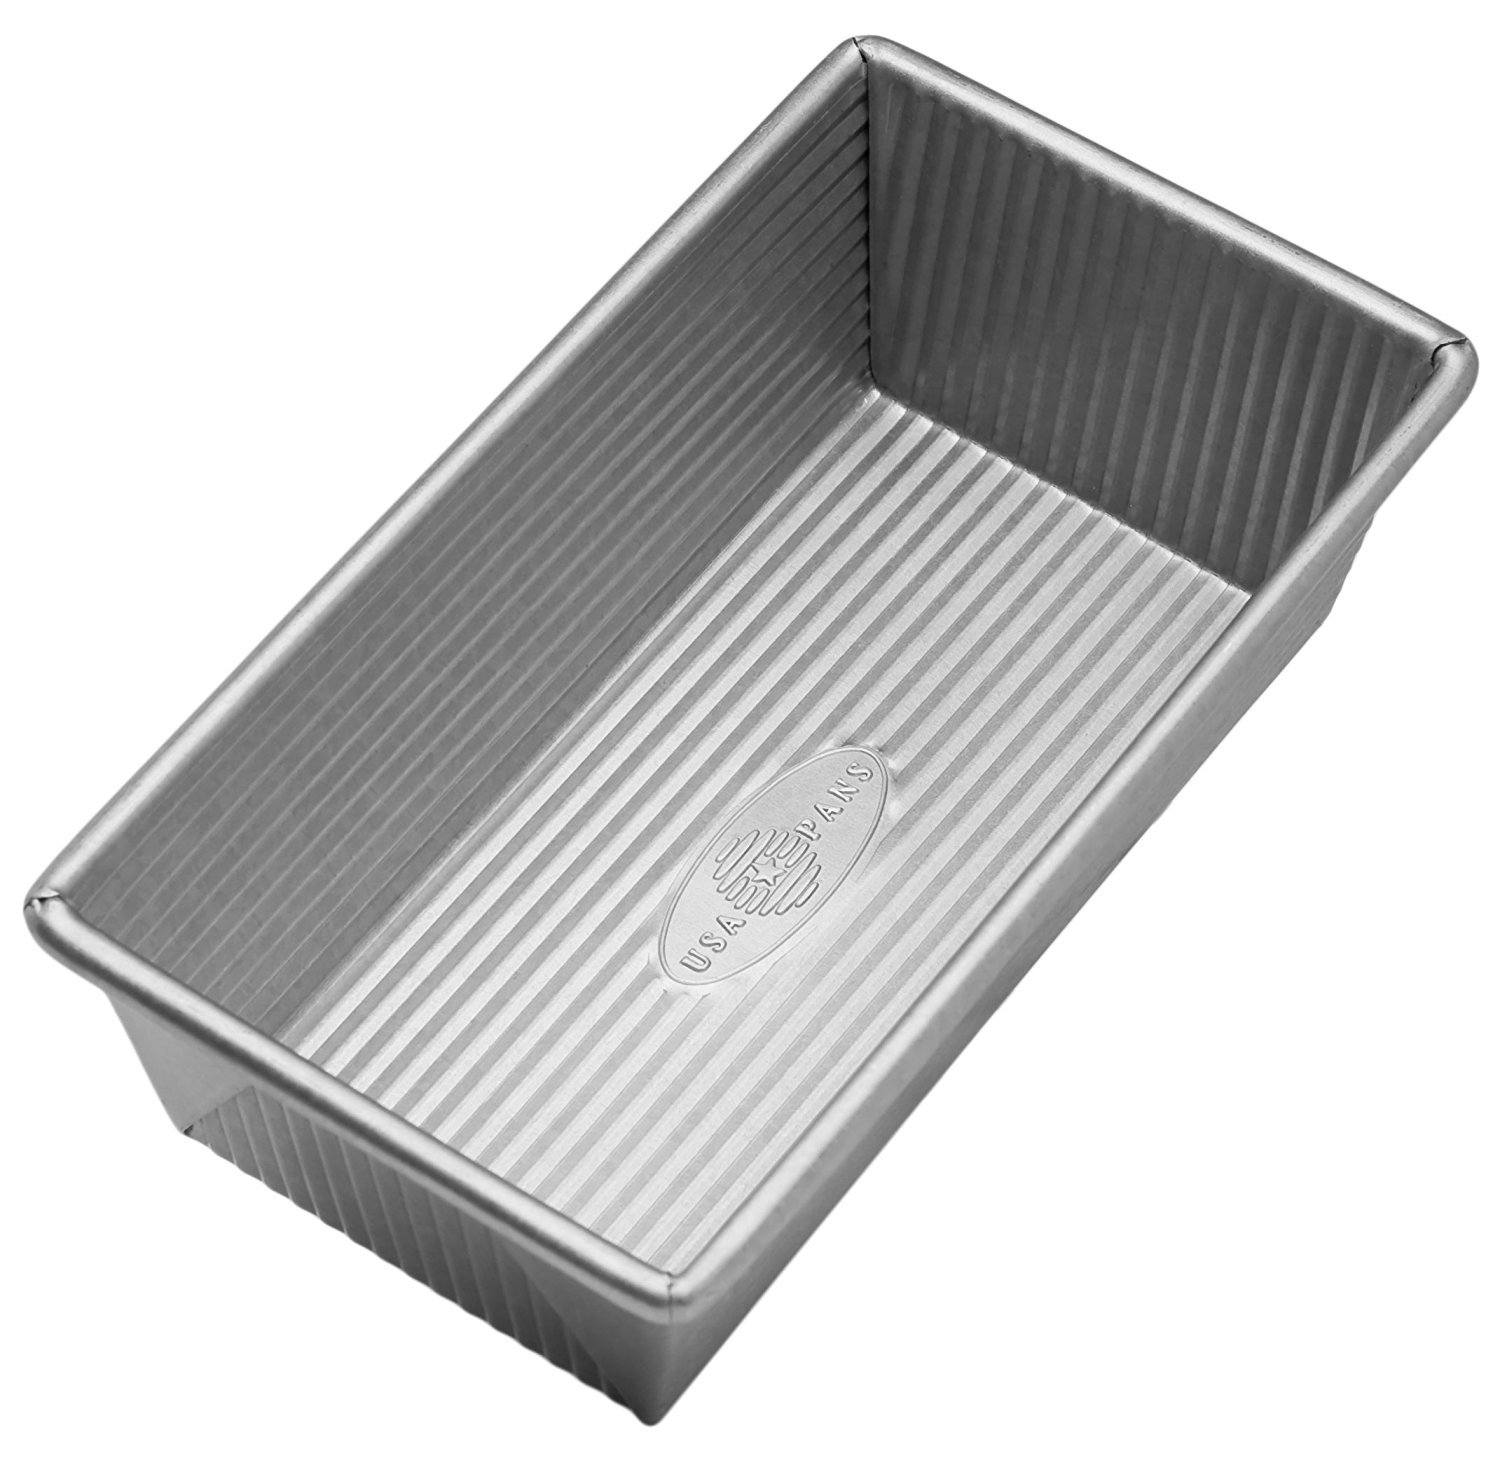 USA Aluminized Steel Bread Pan